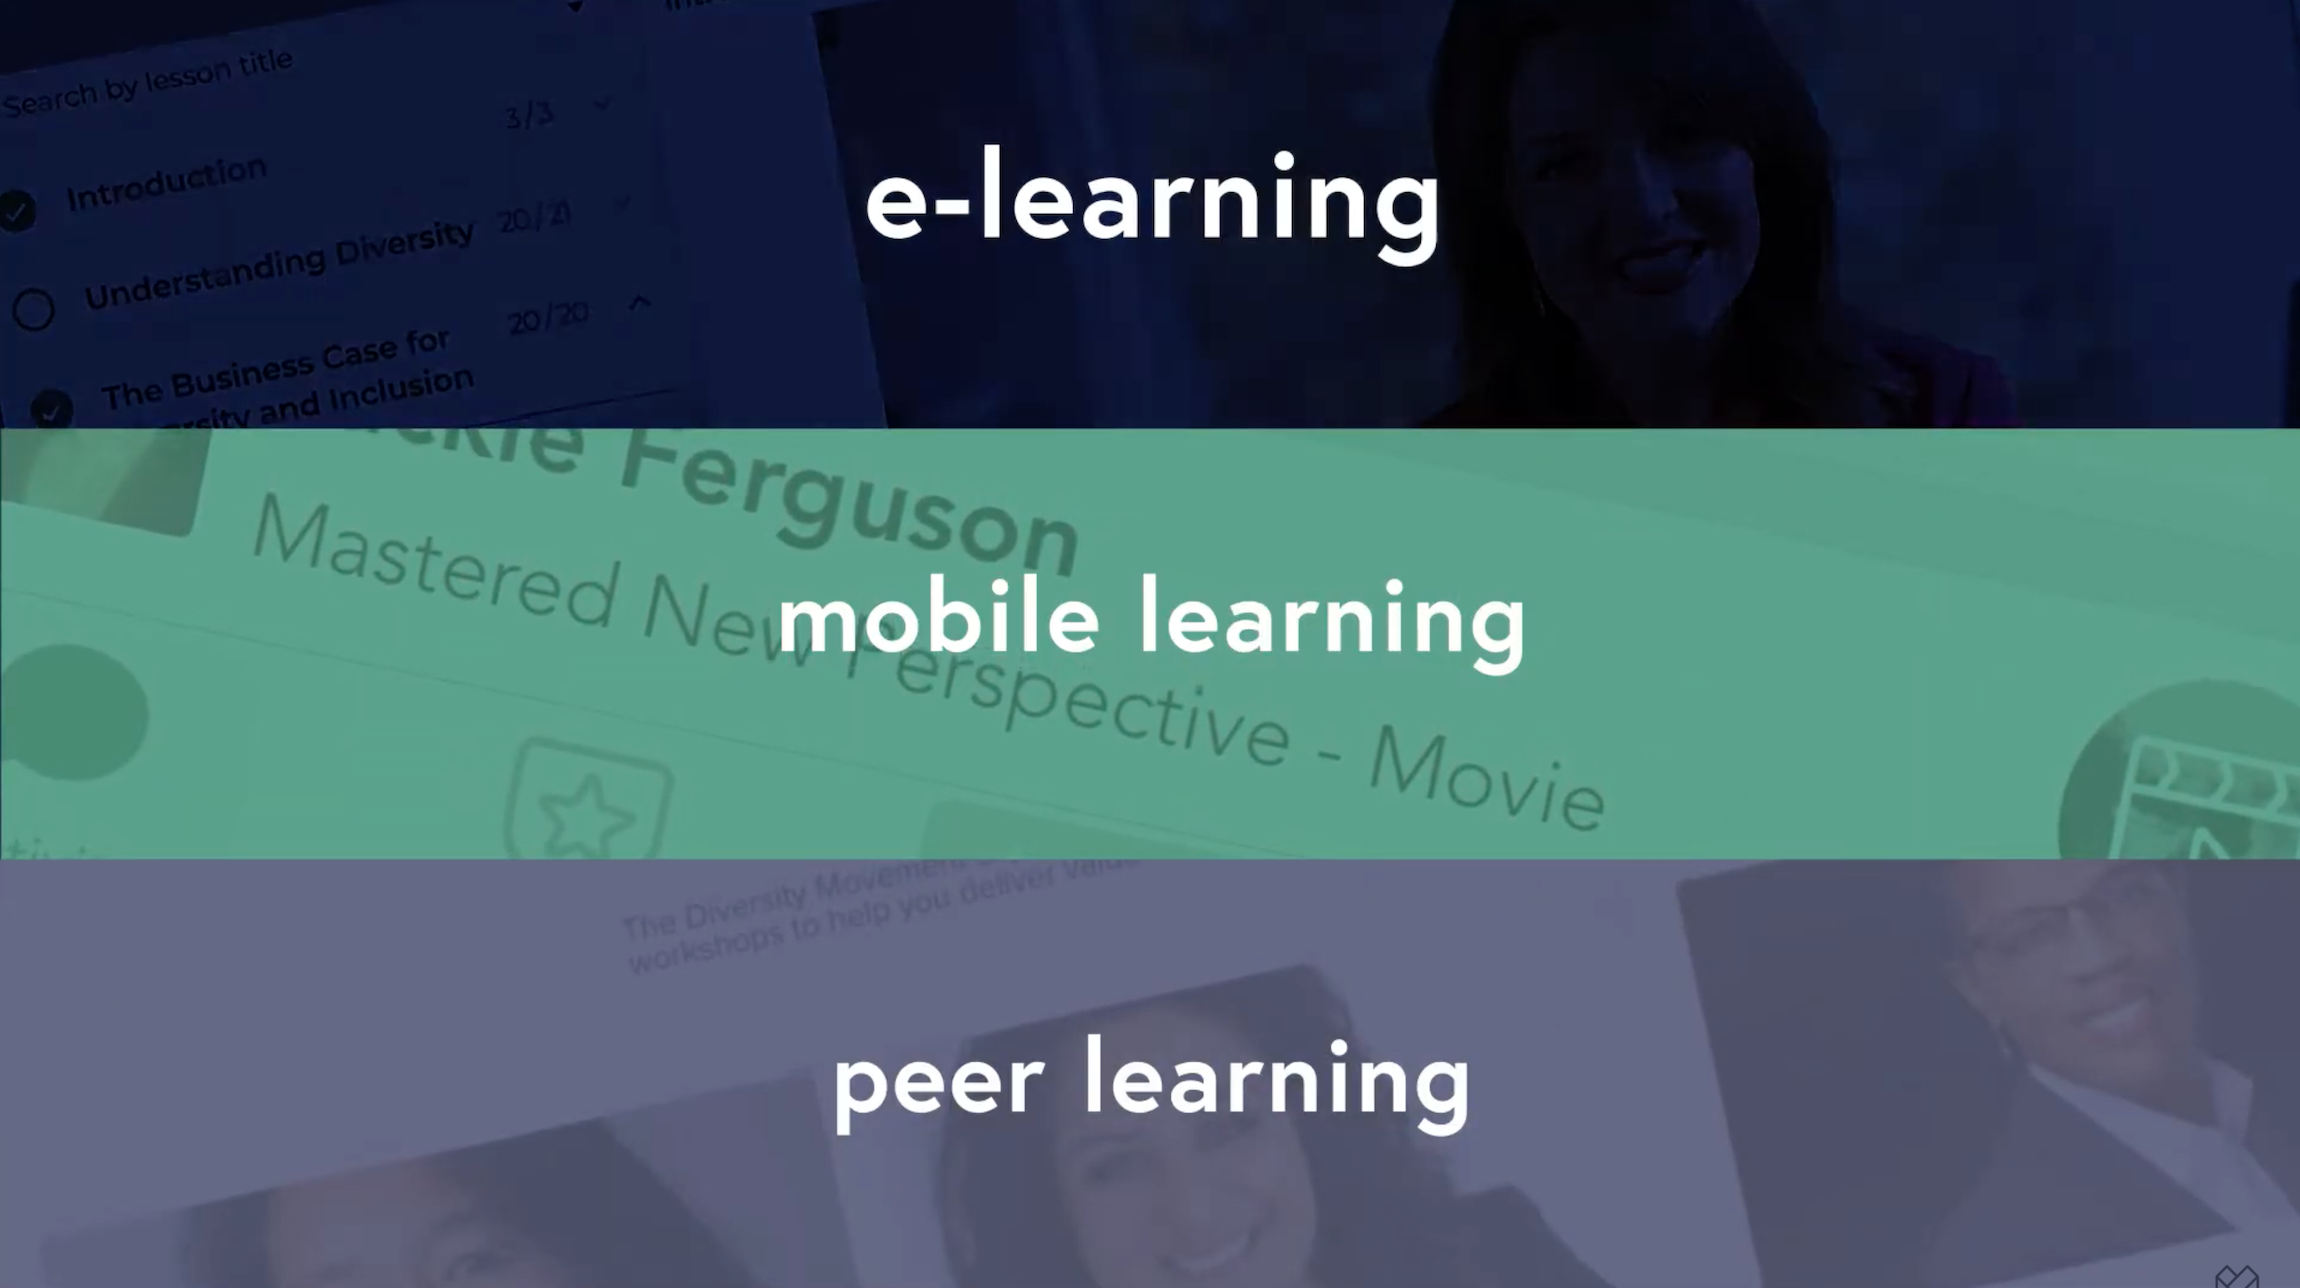 screengrab from video showcasing e-learning, mobile learning, and peer learning categories